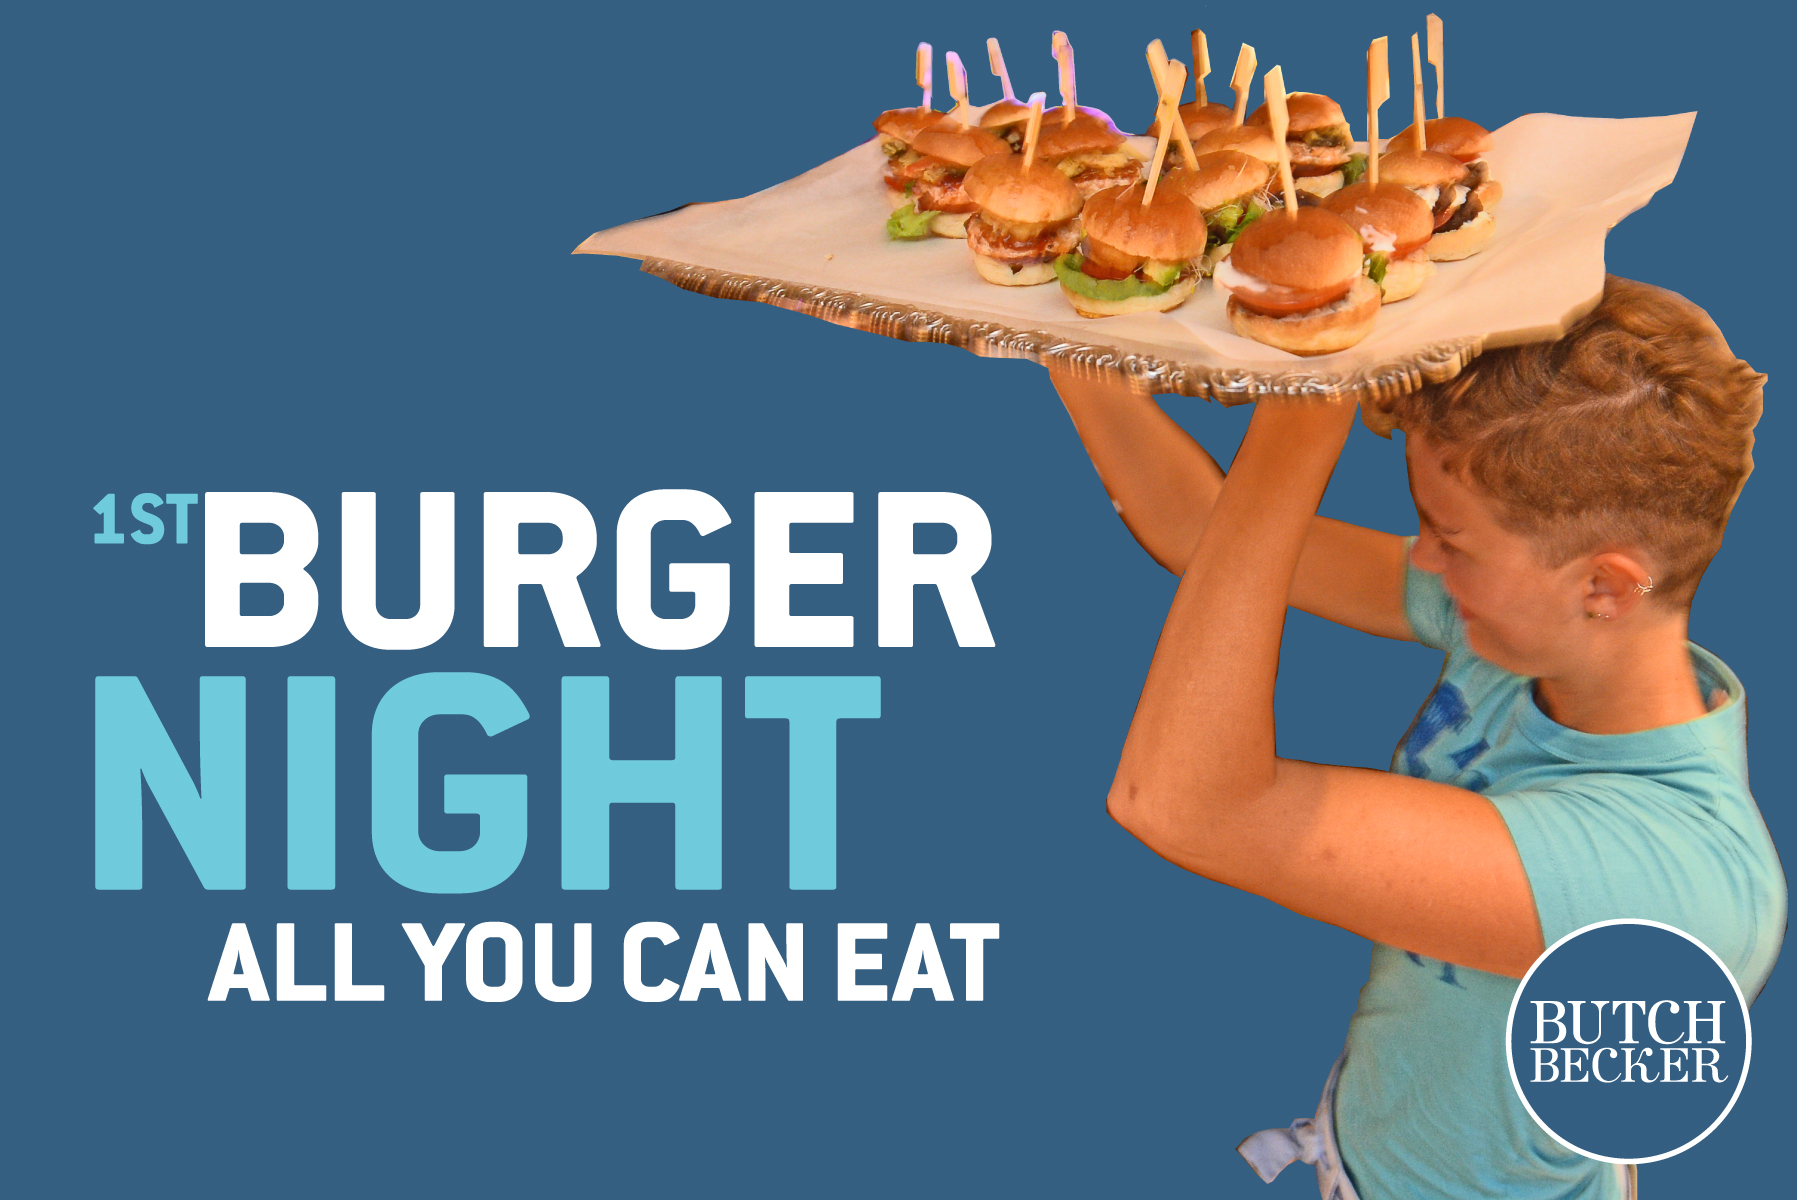 1St BURGER NIGHT - ALL YOU CAN EAT